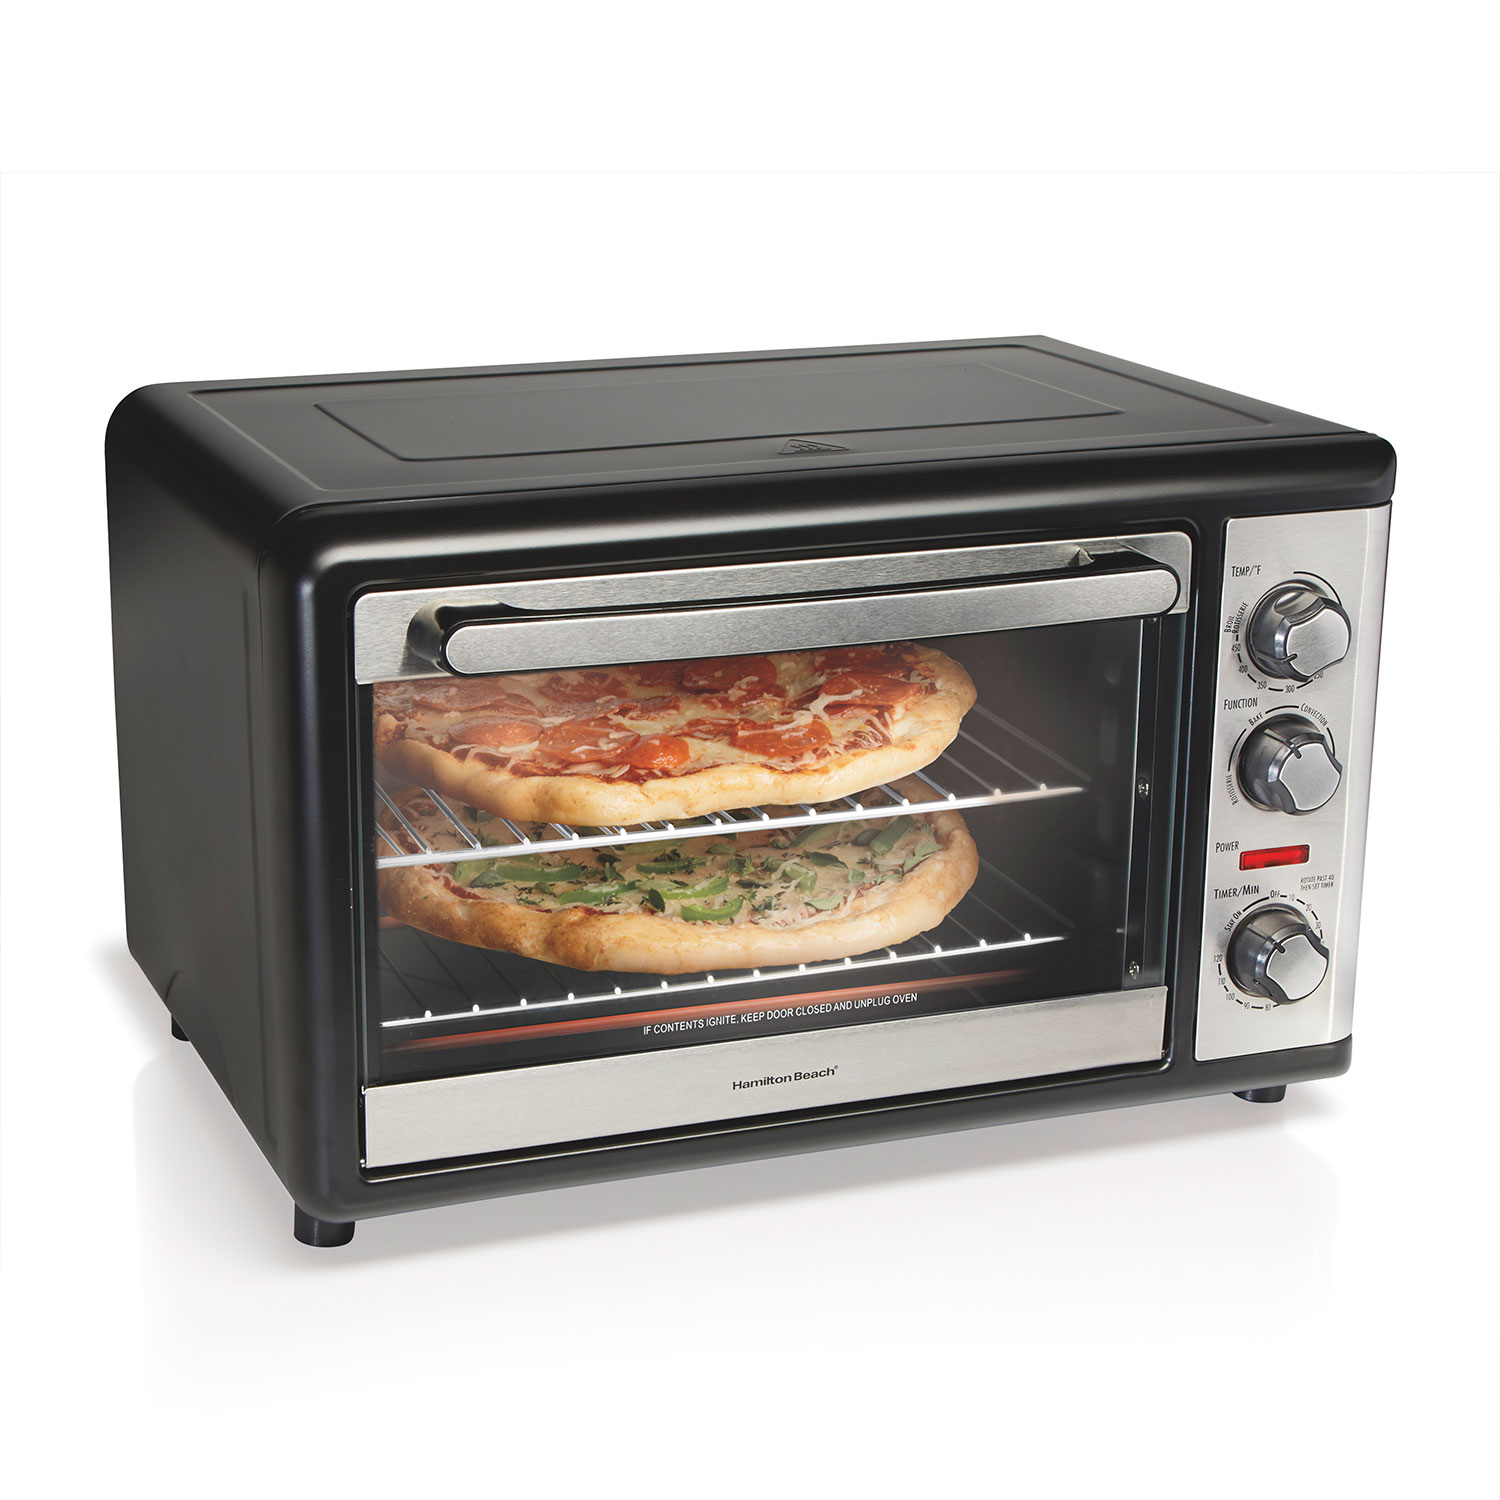 Gambar Oven Gas Pizza Ovens Hamiltonbeach